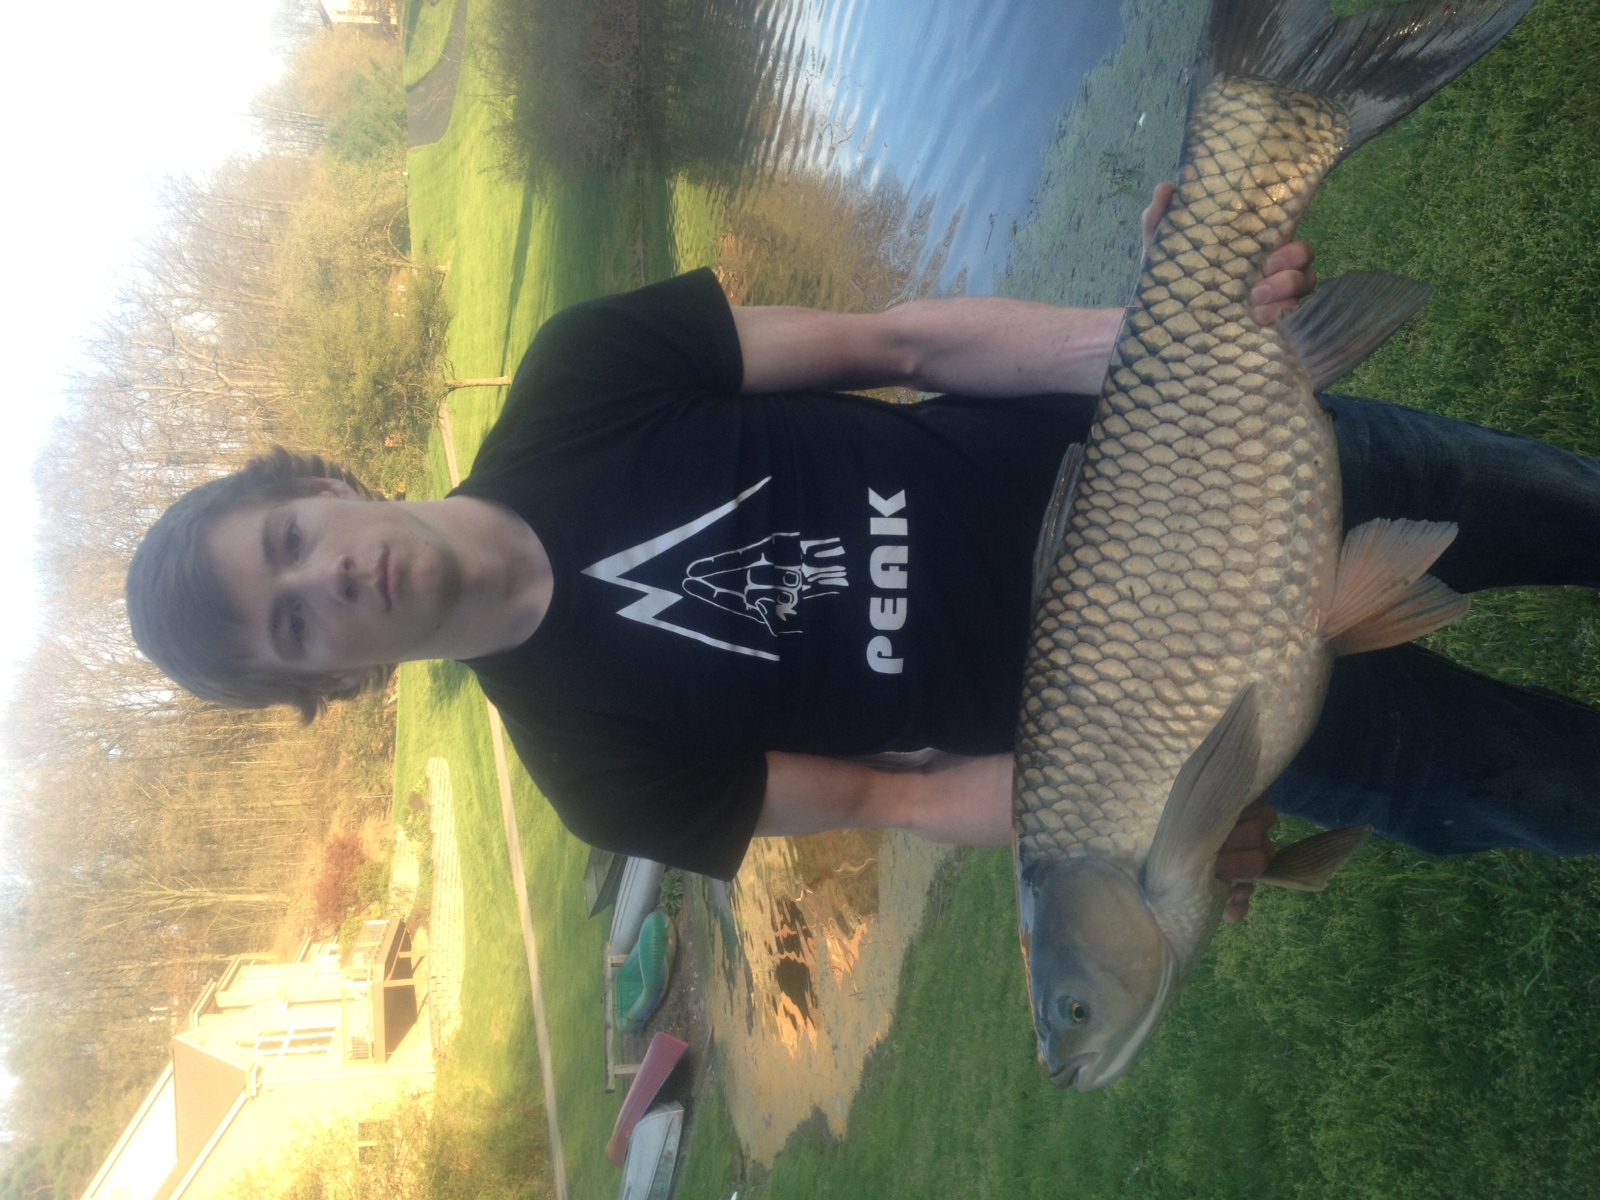 Grady Codd Mars Pa  when we grabbed our ultralight rod and reel setups to go after some pond